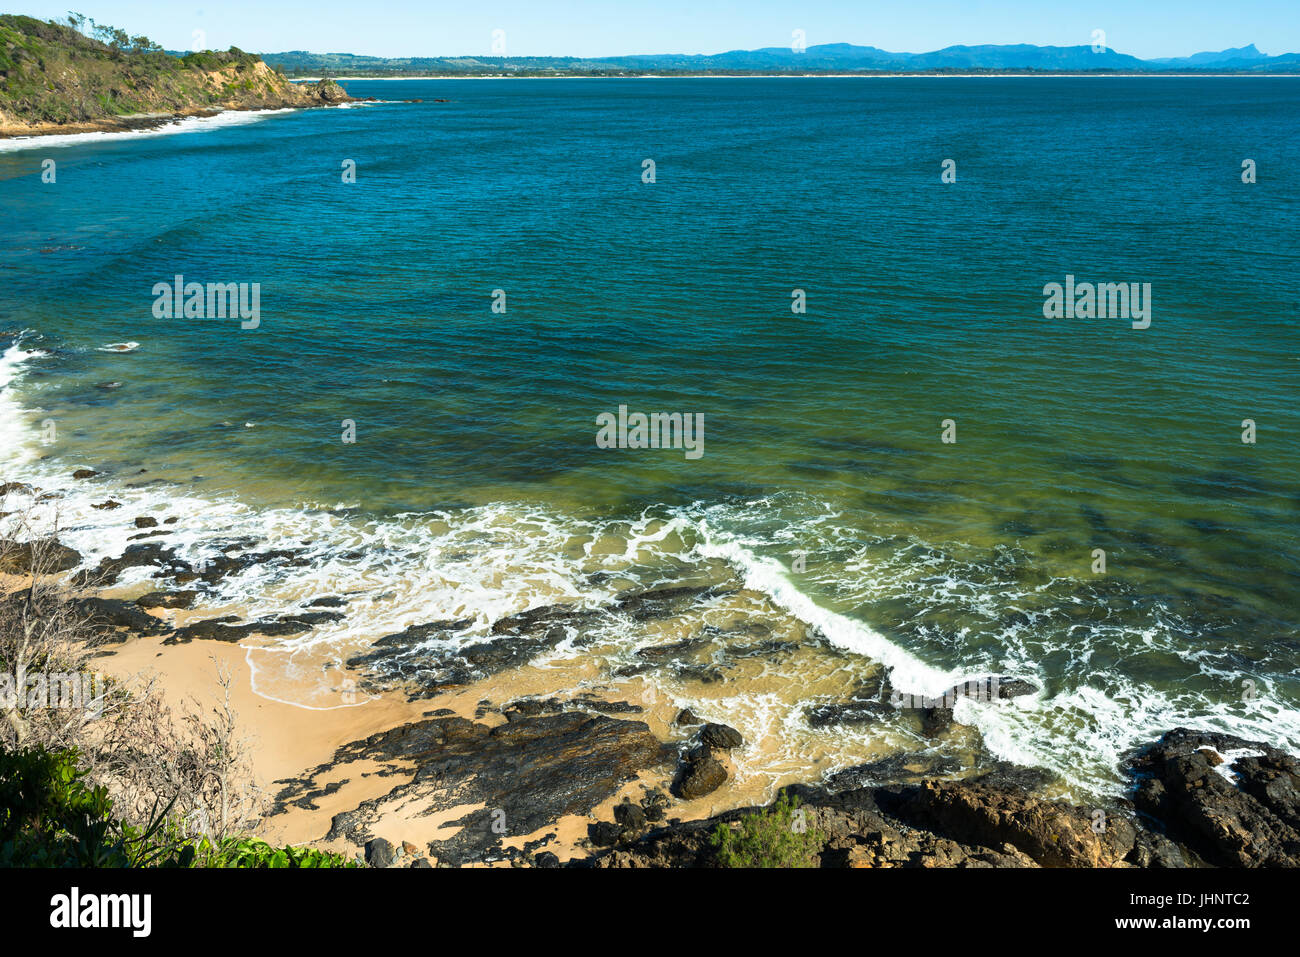 Spectacular scenery at Byron Bay, New South Wales, Australia - Stock Image